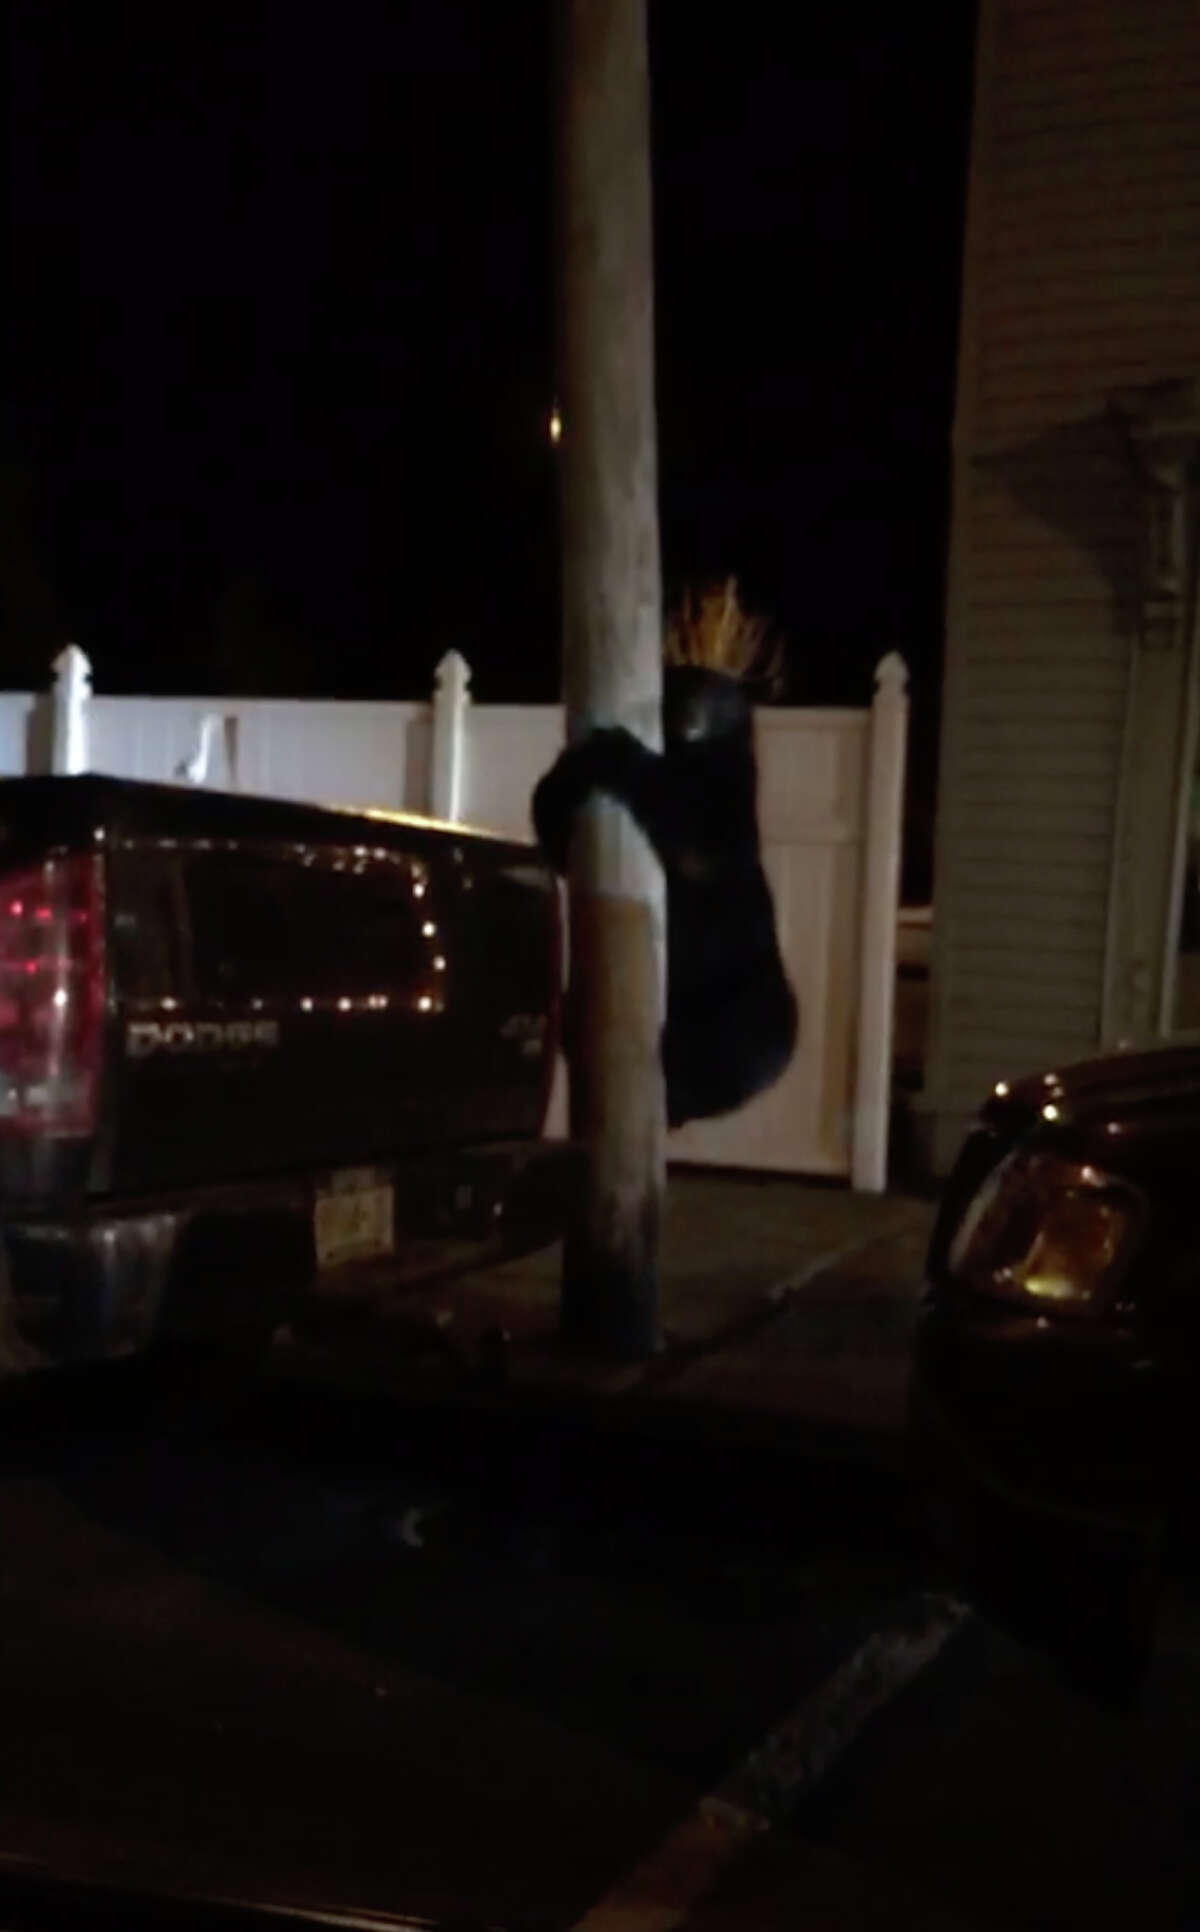 A 100-pound, healthy bear wandered through downtown Hudson, N.Y., on April 2, 2019. No one was hurt and the bear eventually returned to the woods, police said.